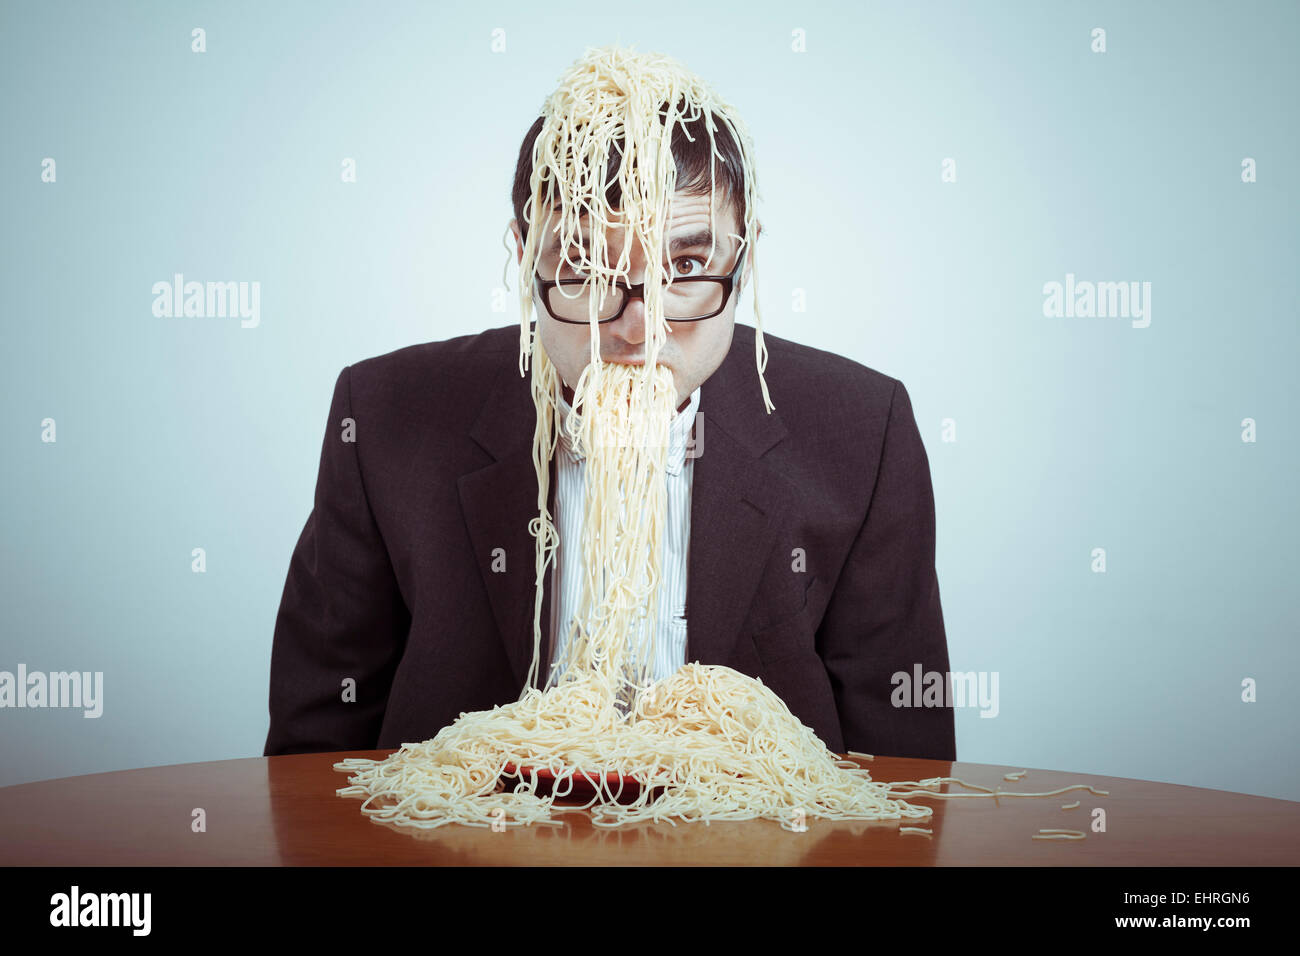 Overeating and consumerism concept. Nasty businessman eating pasta. - Stock Image